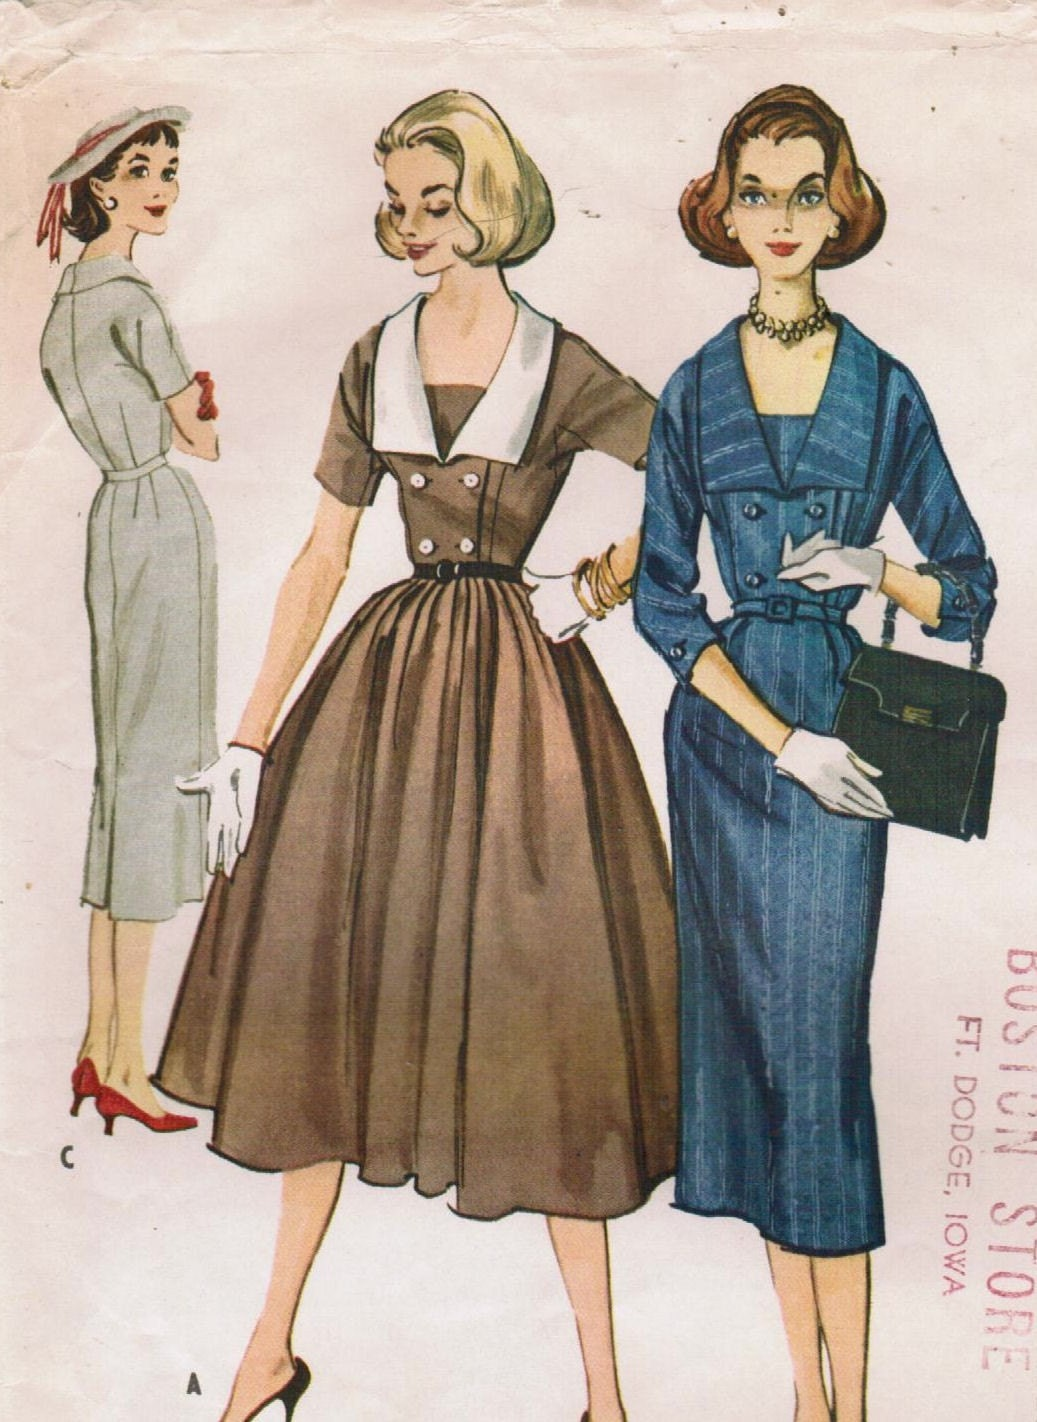 Vintage 1957 McCall's 4251 Sewing Pattern Misses' Dress Size 16 Bust 36